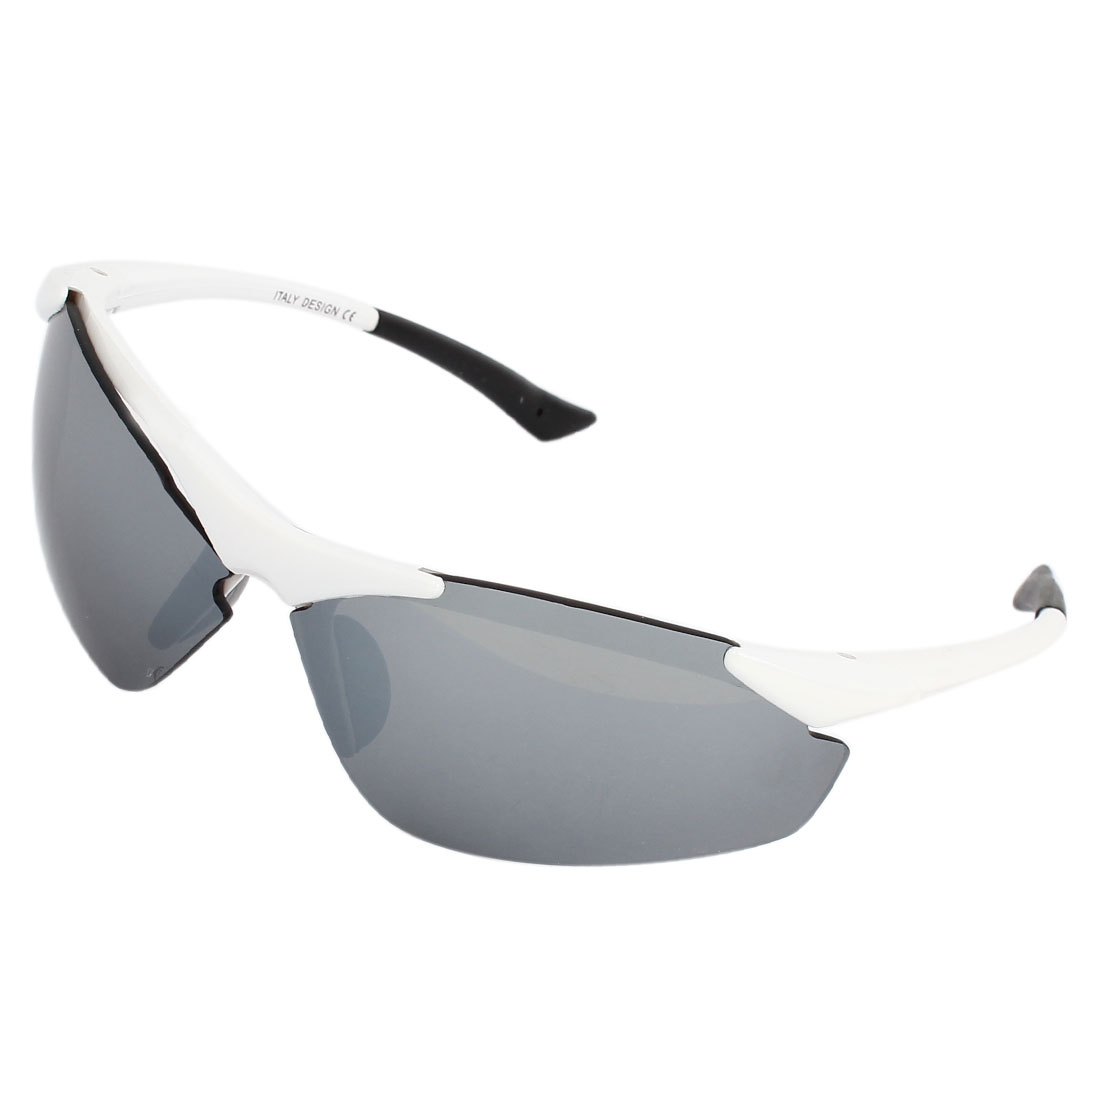 White Plastic Frame Outdoor Sports Protective Sunglasses for Unisex